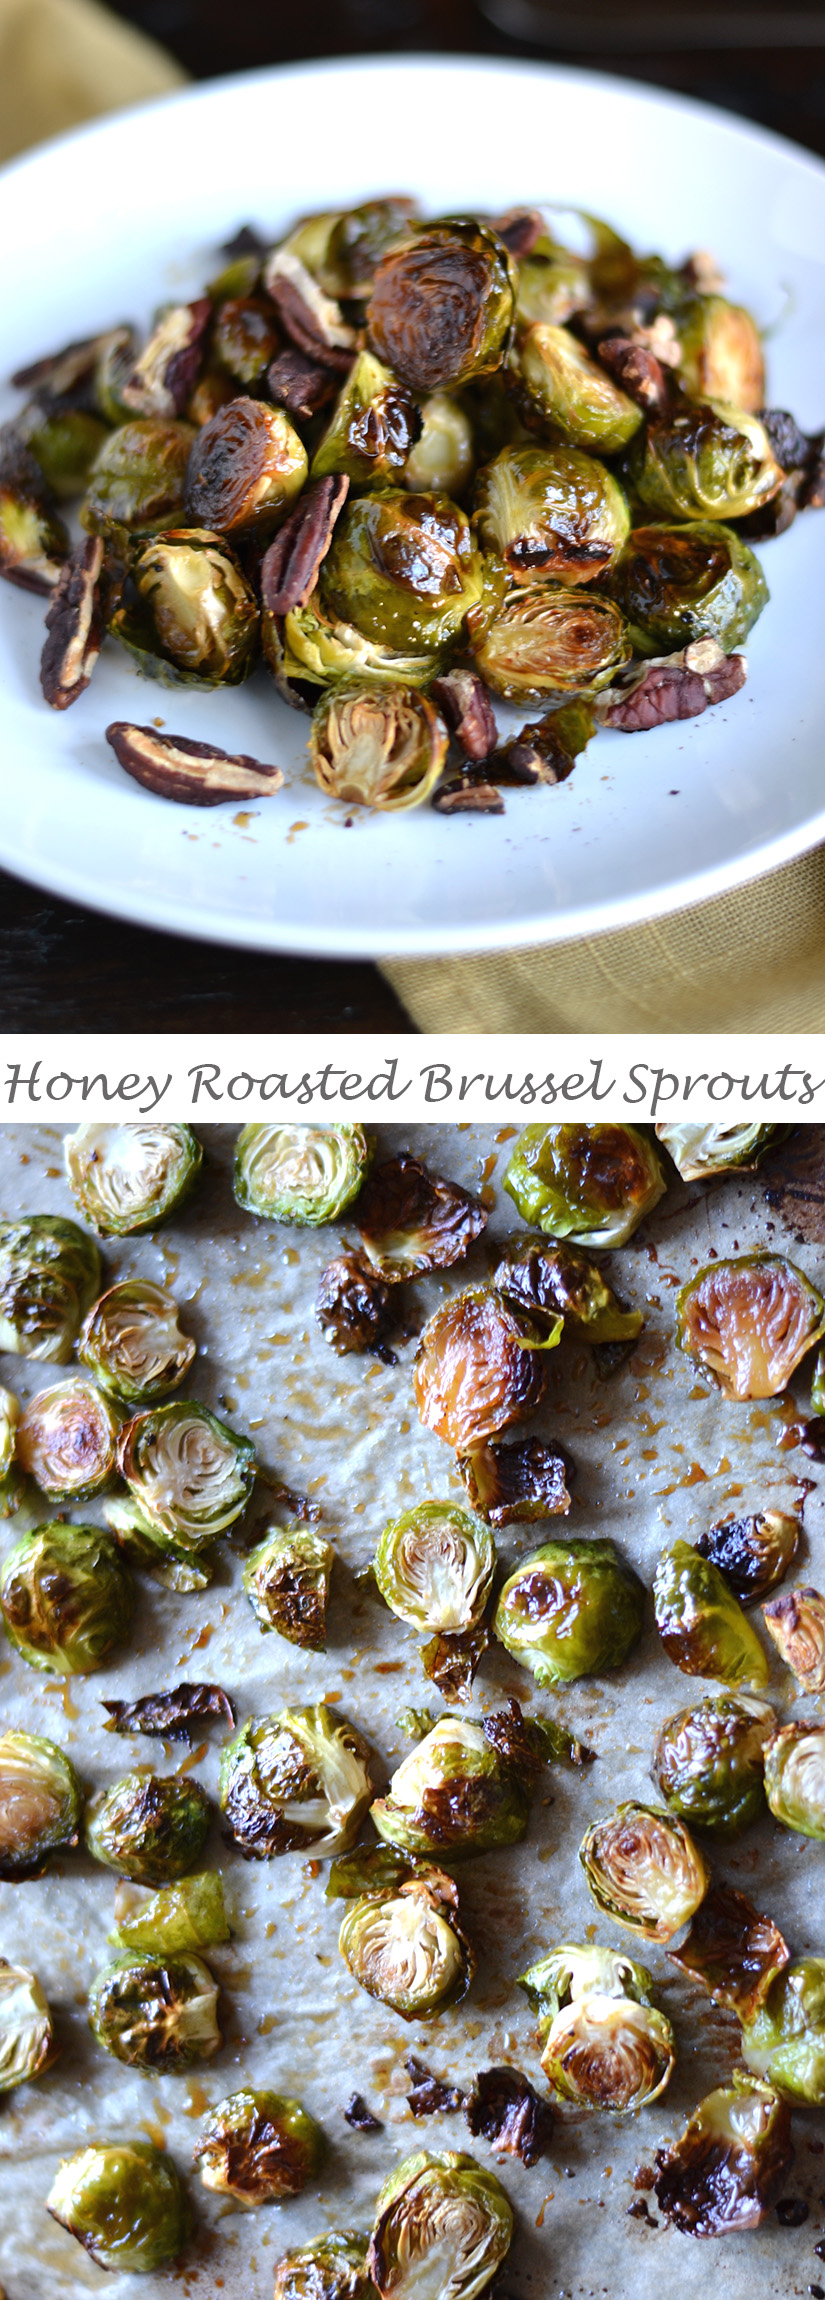 Honey Glazed Brussel Sprouts with Pecans | impeckableeats.com